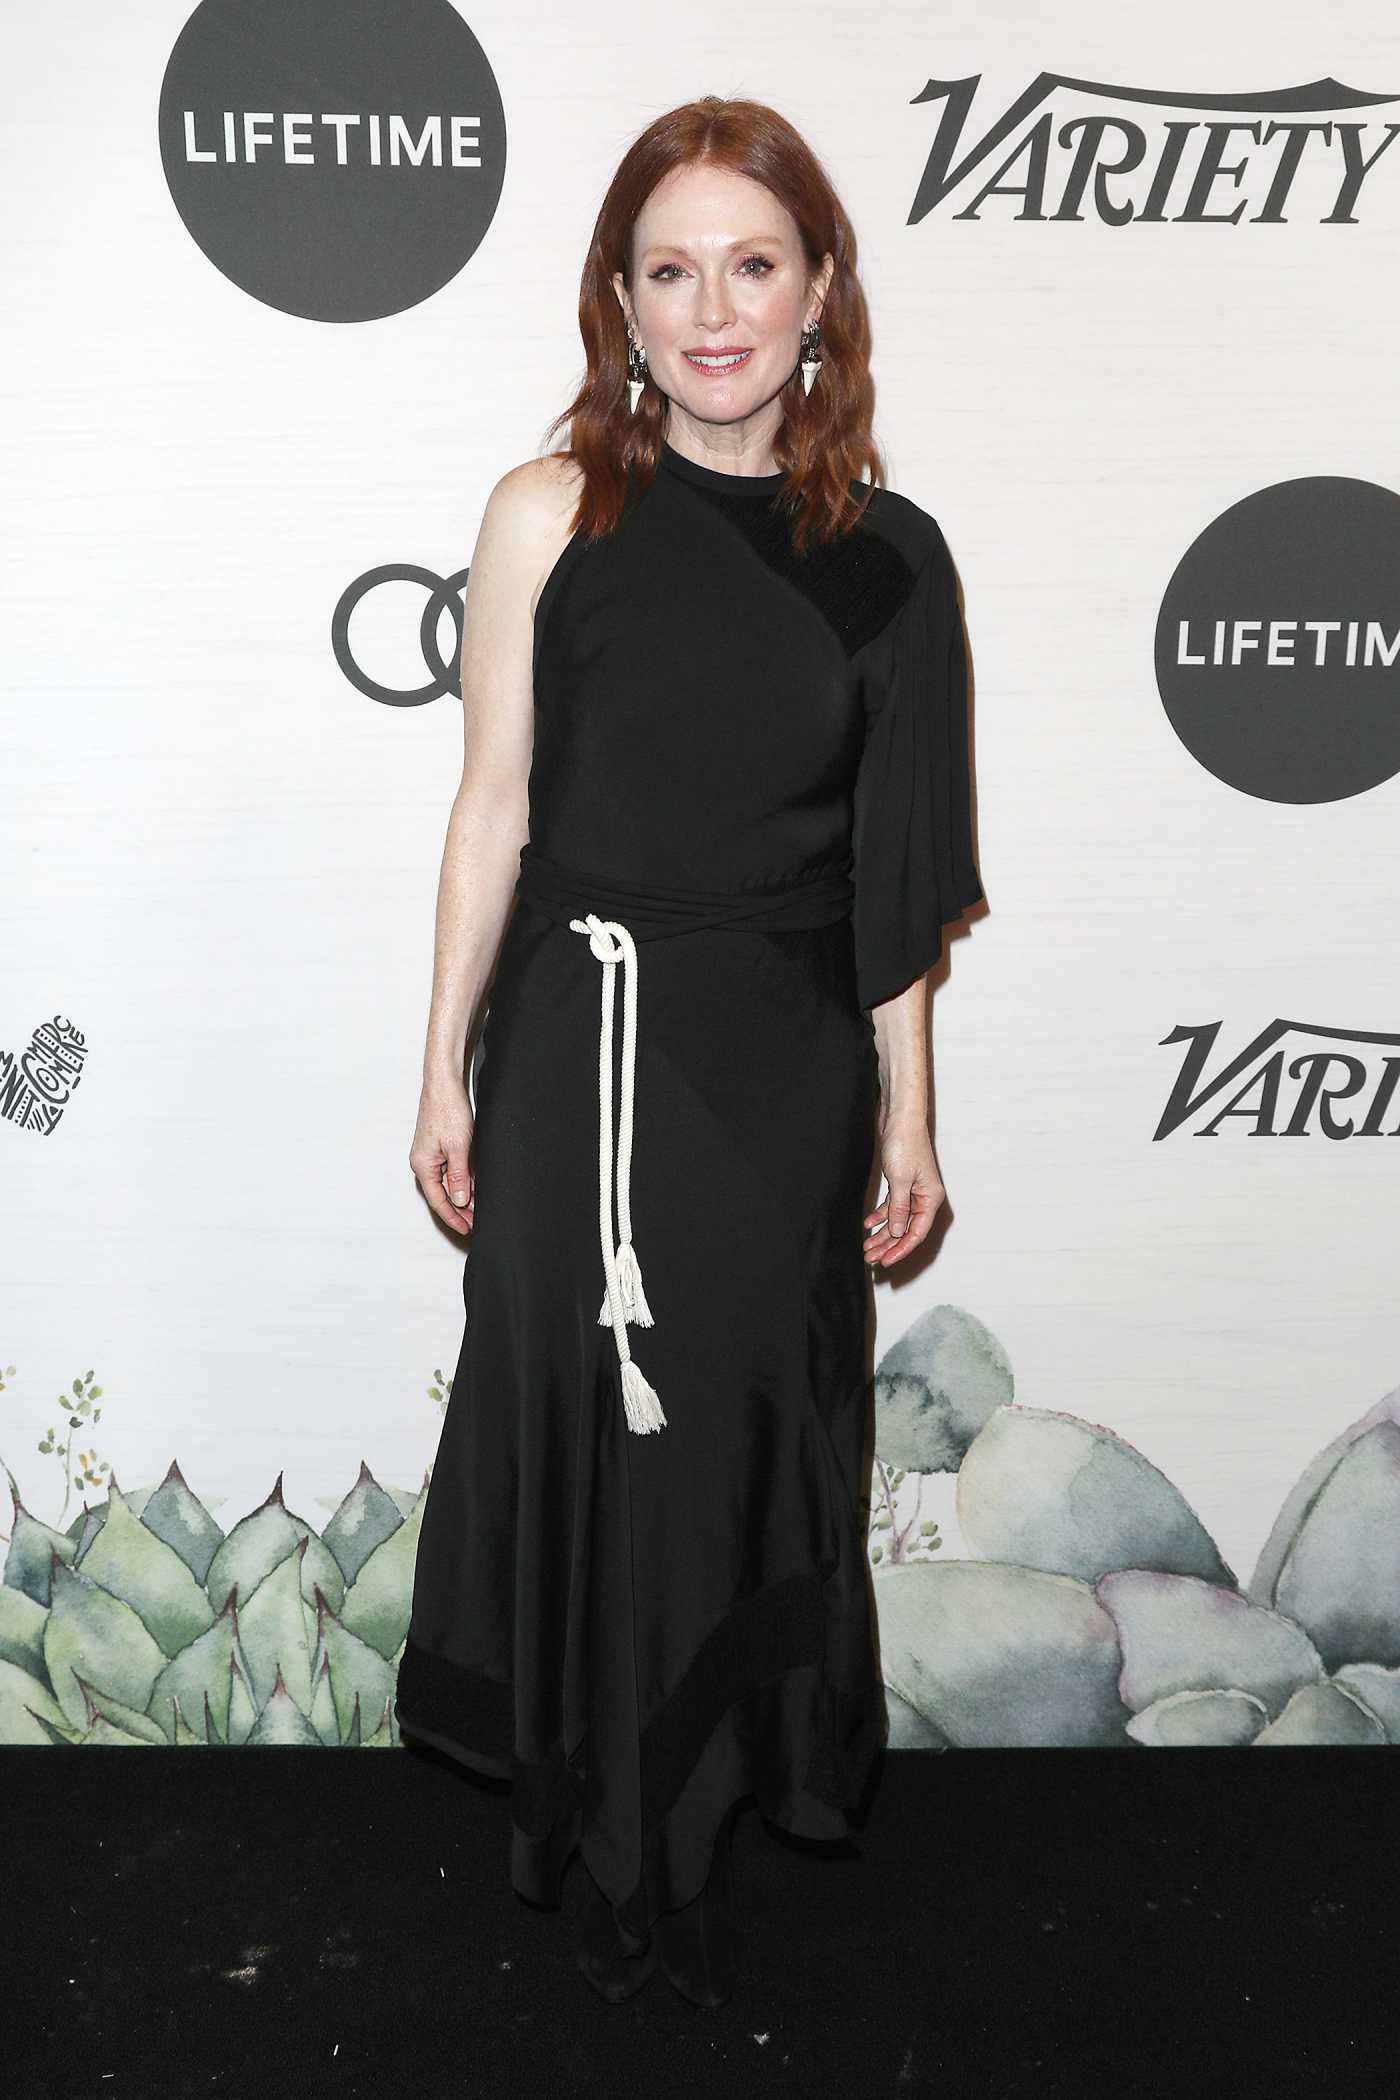 Julianne Moore Attends 2019 Variety's Power of Women in New York 04/05/2019